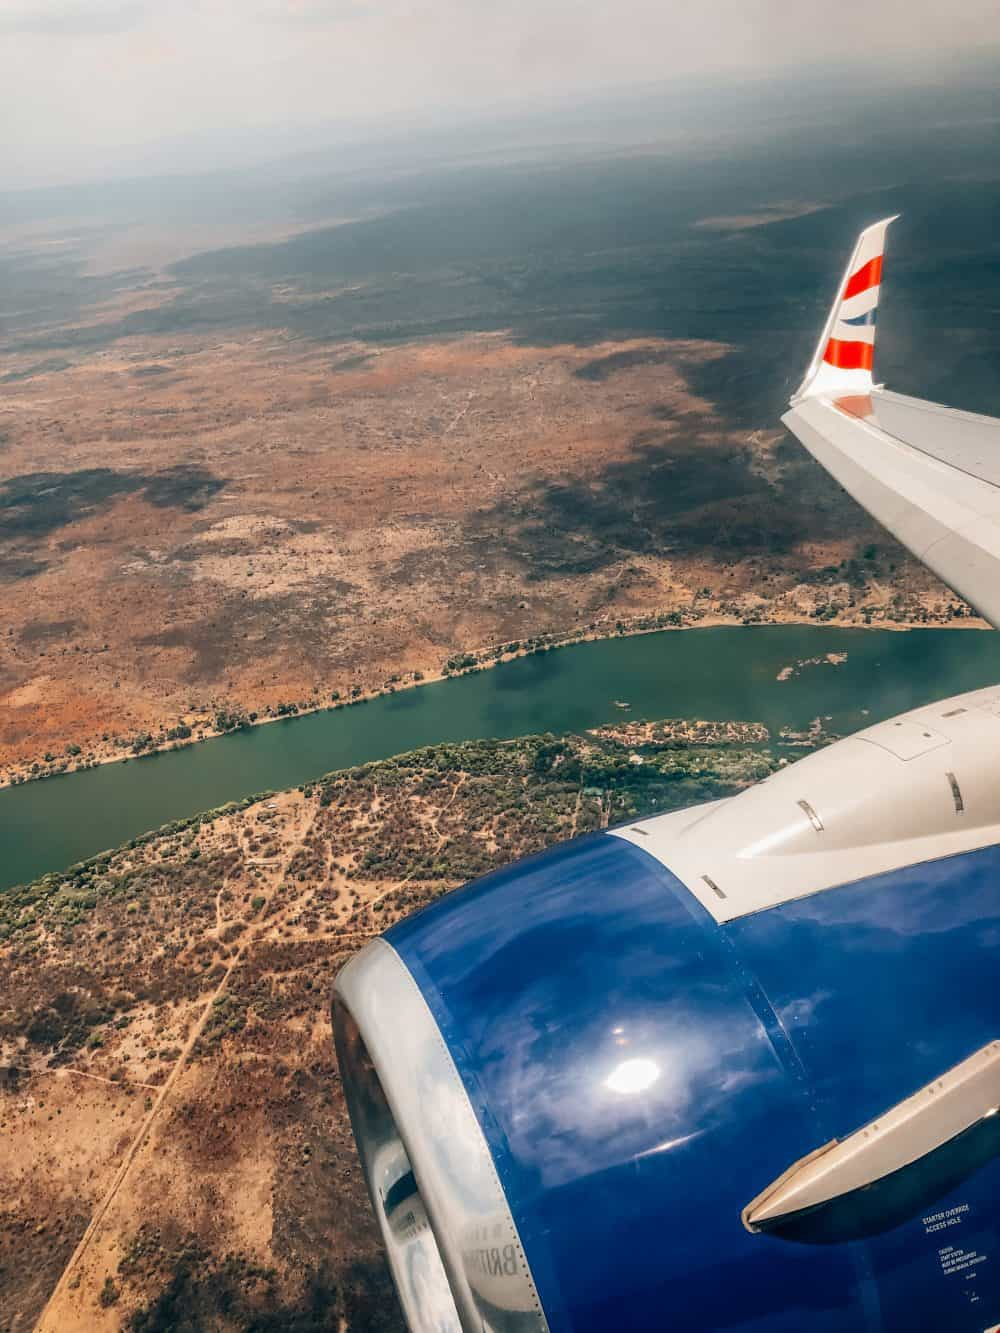 Flying into Livingstone airport from Johannesburg